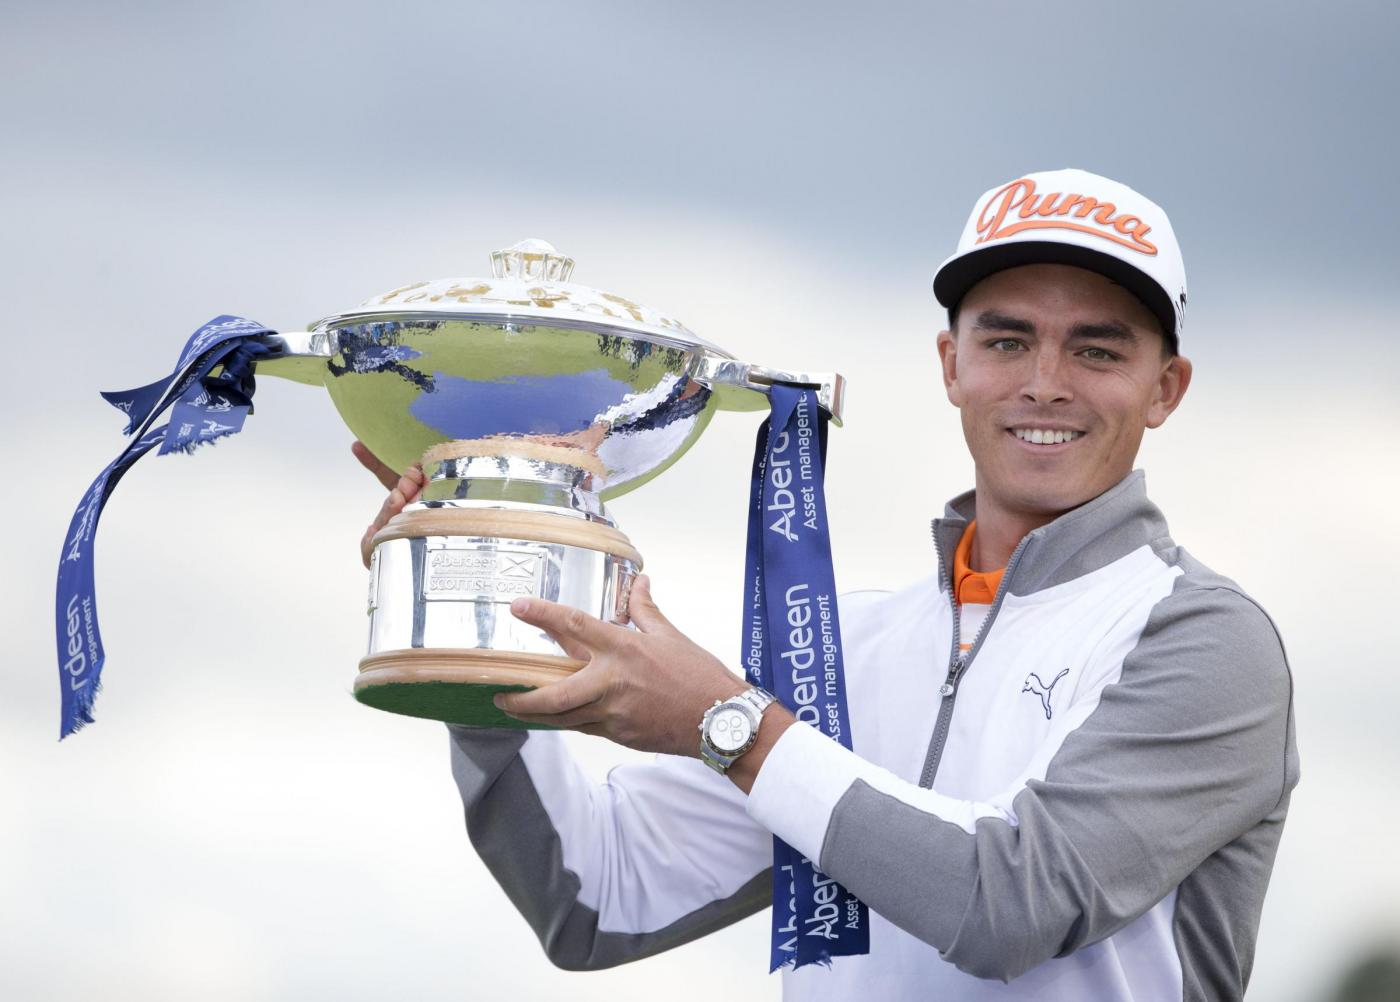 USA's Rickie Fowler celebrates with the trophy after winning the Scottish Open at Gullane Golf Club, East Lothian. PRESS ASSOCIATION Photo. Picture date: Sunday July 12, 2015. See PA story GOLF Gullane. Photo credit should read: Kenny Smith/PA Wire. RESTRICTIONS: Editorial use only. No commercial use. No false commercial association. No video emulation. No manipulation of images.